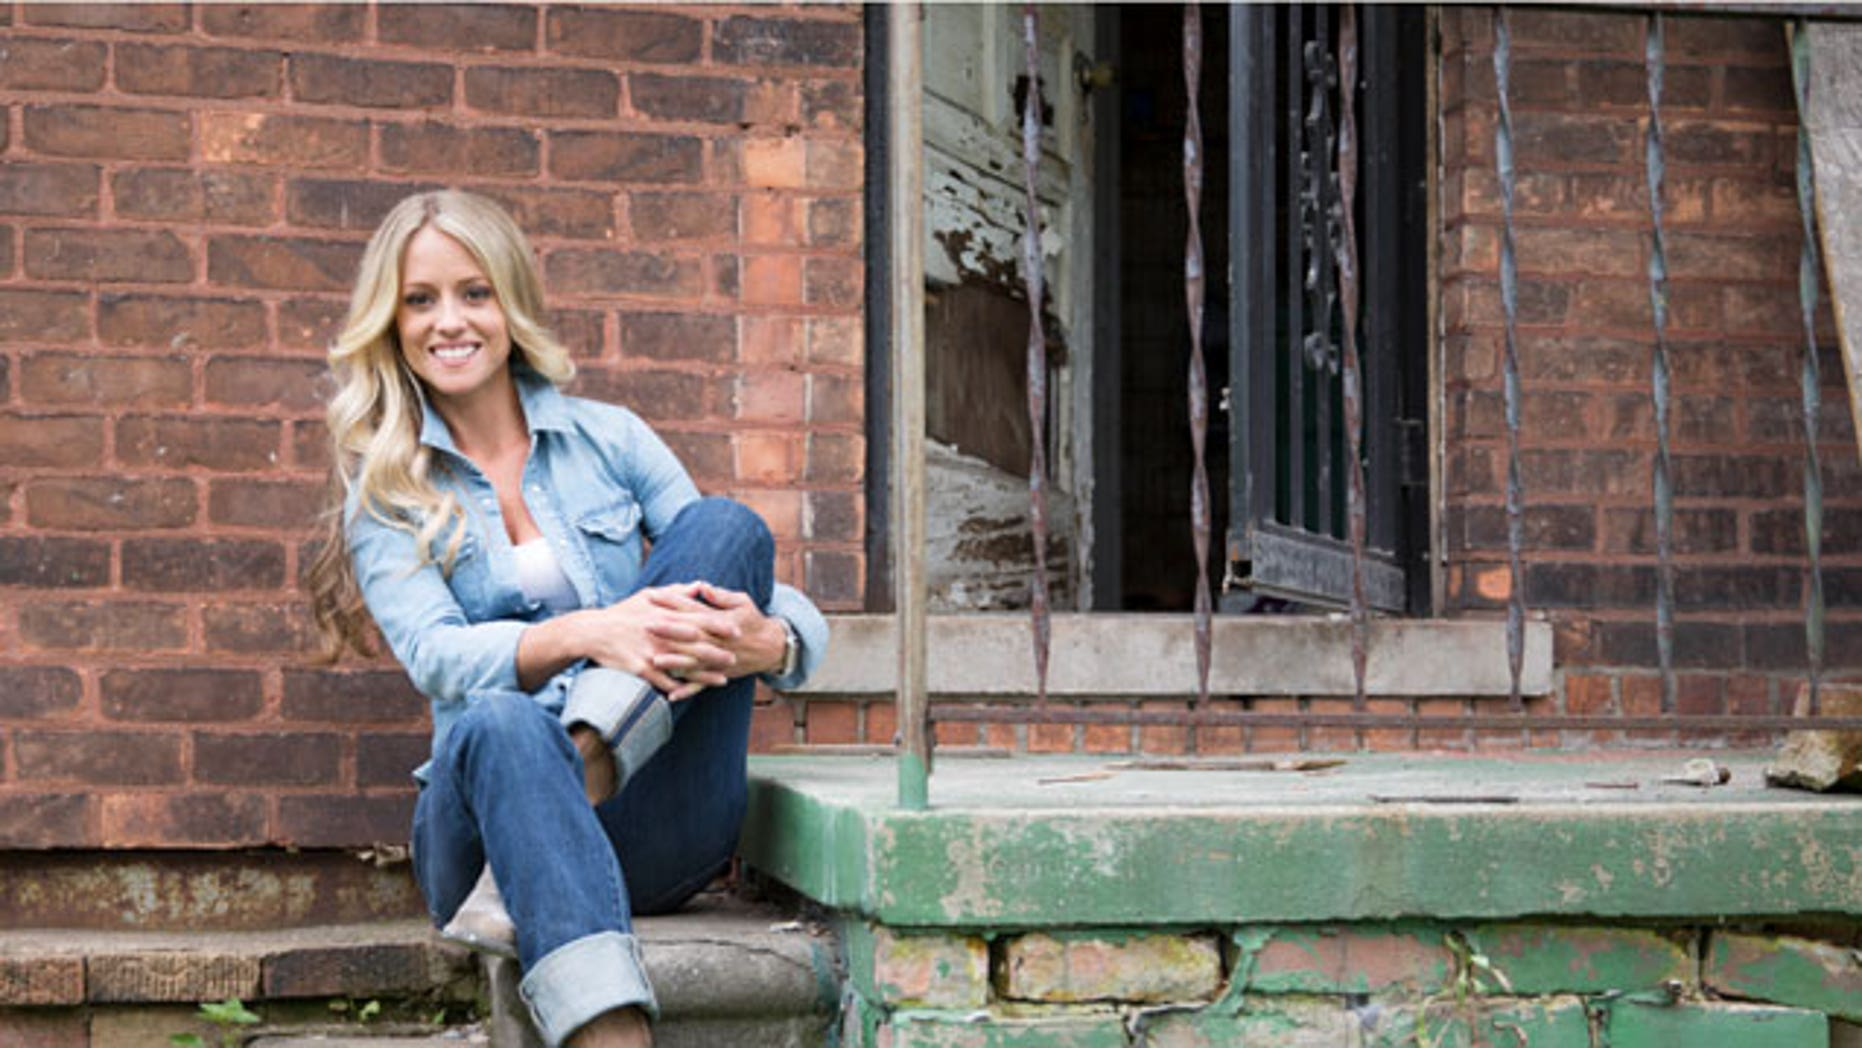 Nicole Curtis took to Instagram on Monday to share a photo of herself working at one of her first jobs.